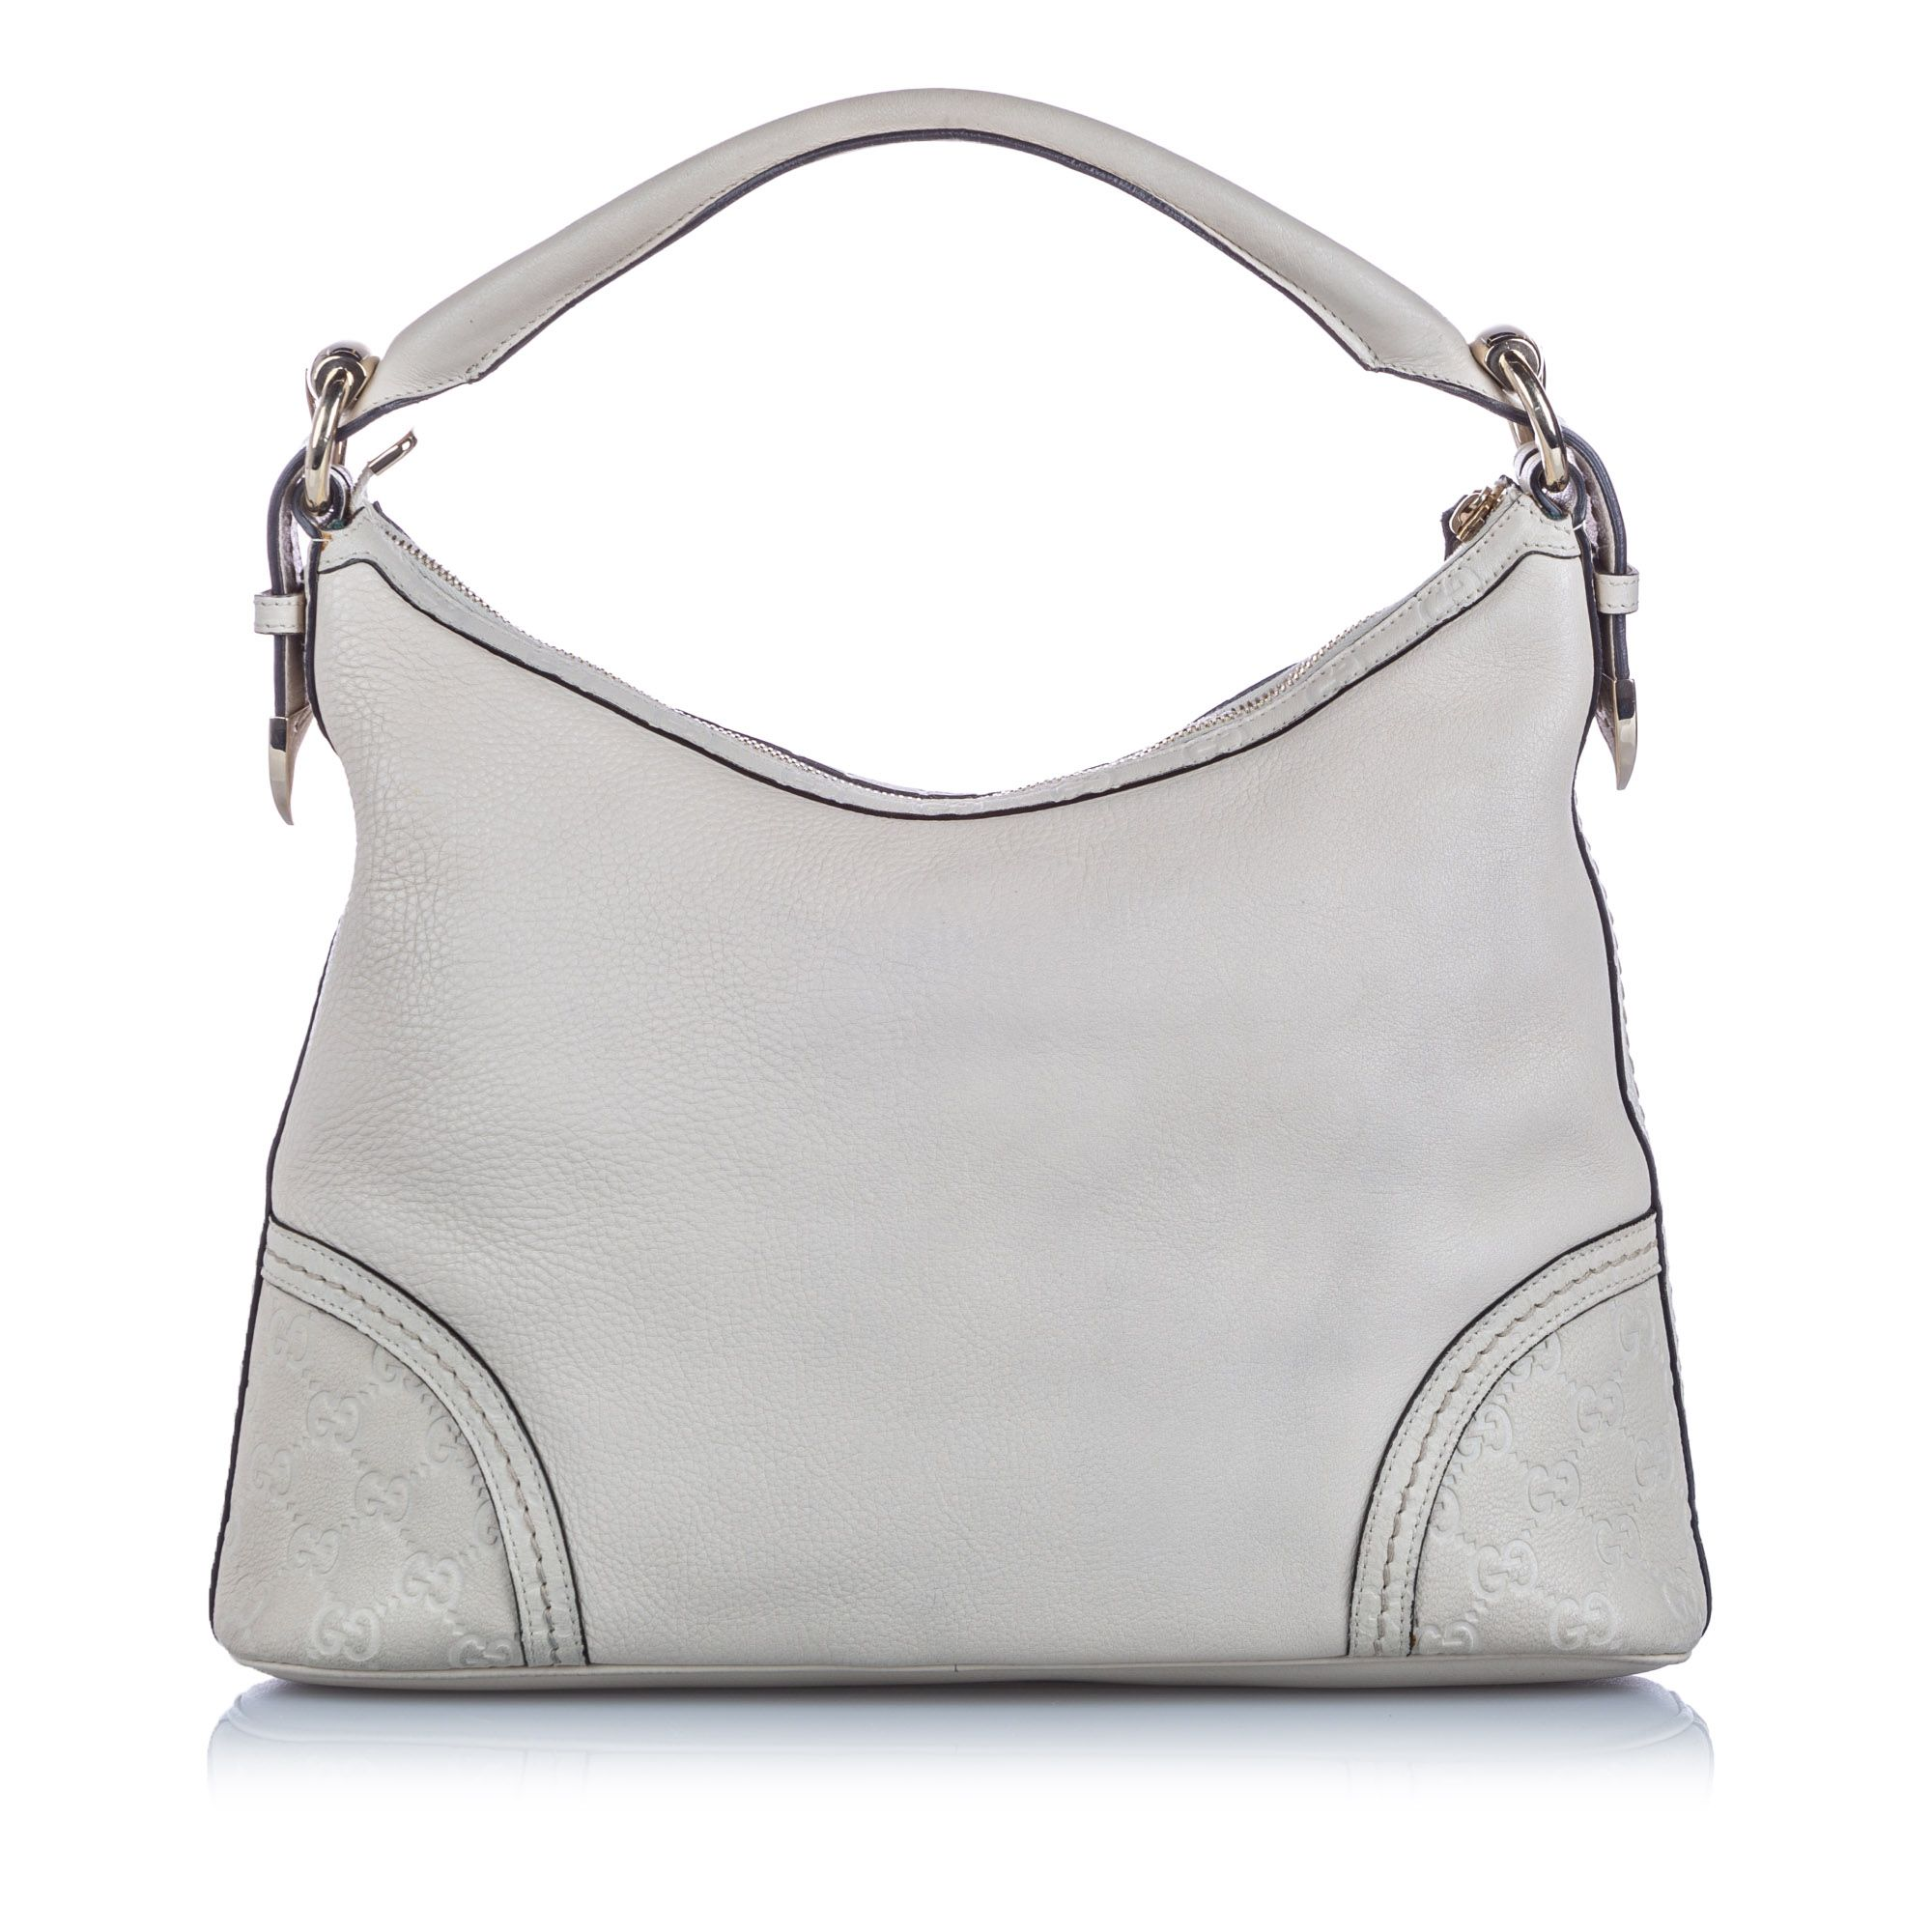 Vintage Gucci Guccissima Leather Signoria Shoulder Bag White